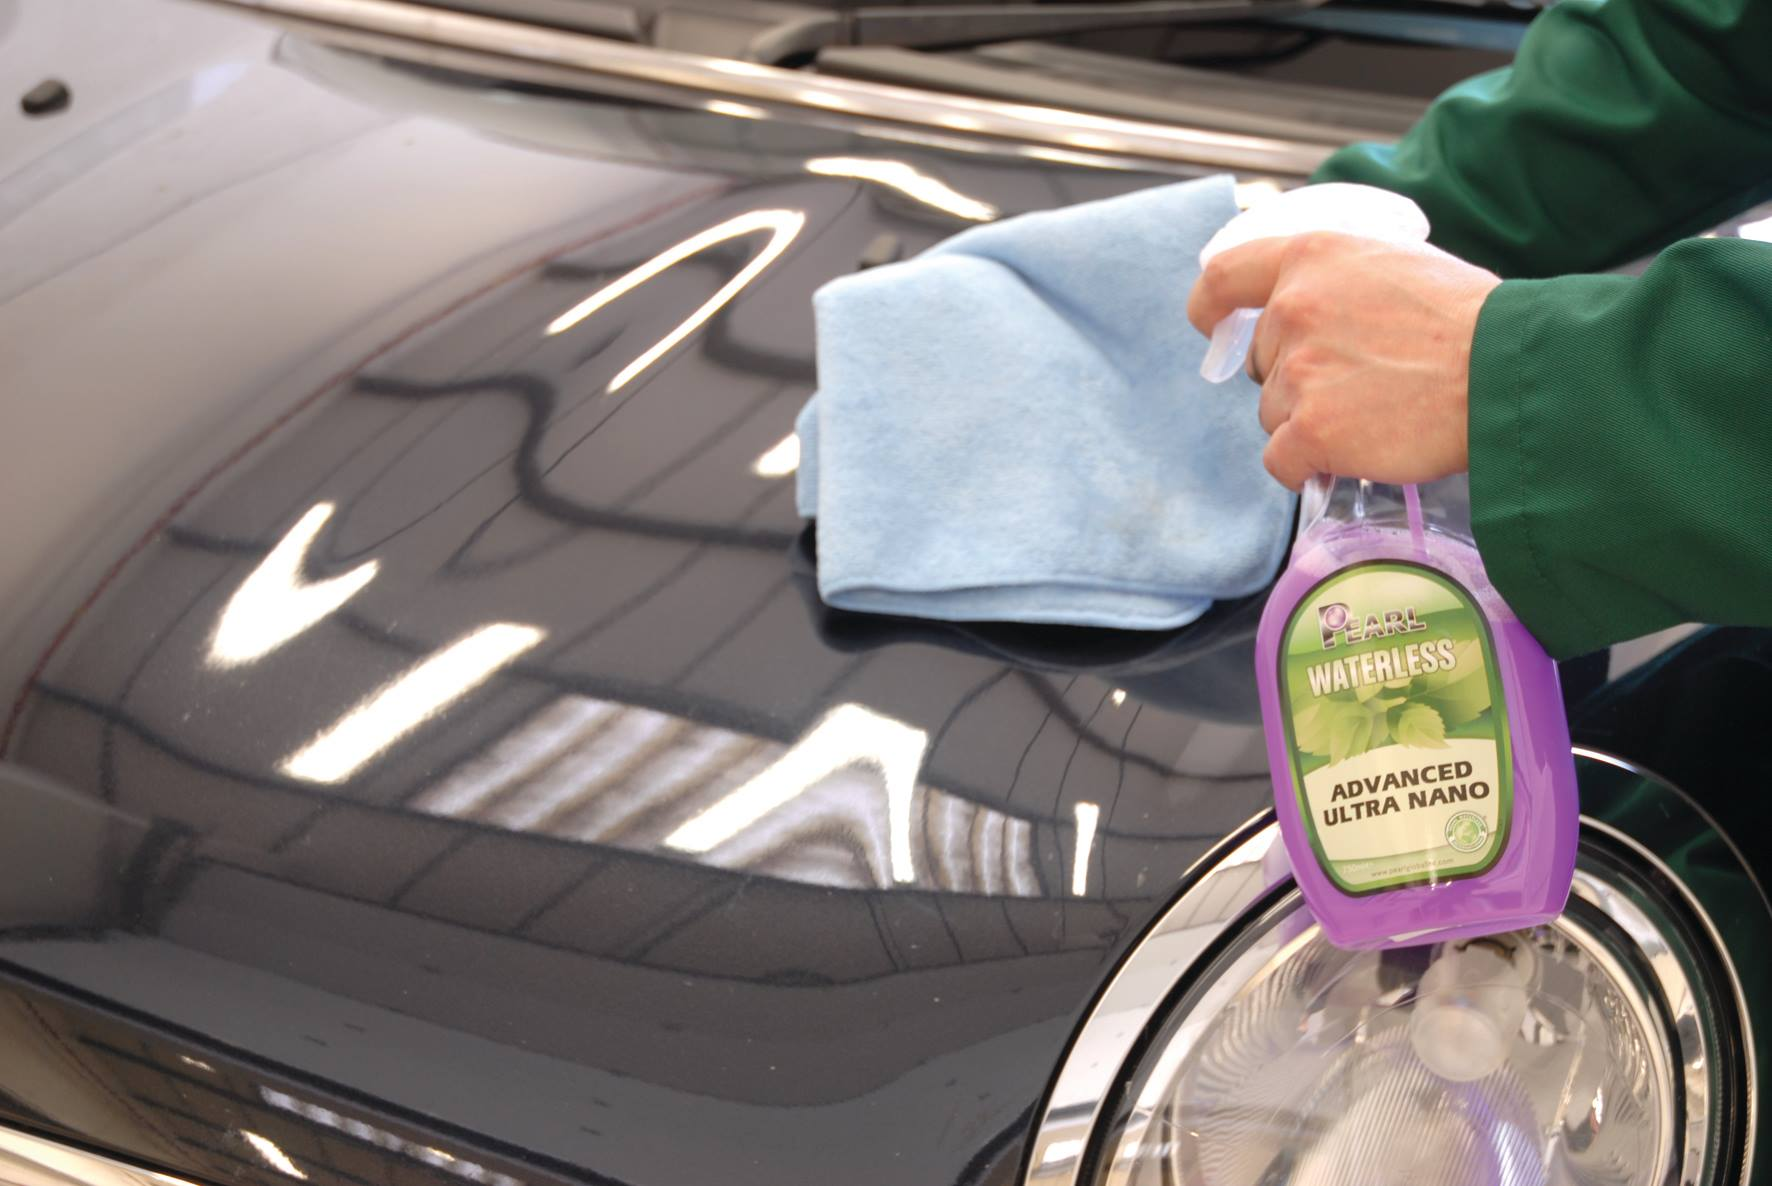 Pearl Advanced Ultra Nano Carnauba Wax Spray